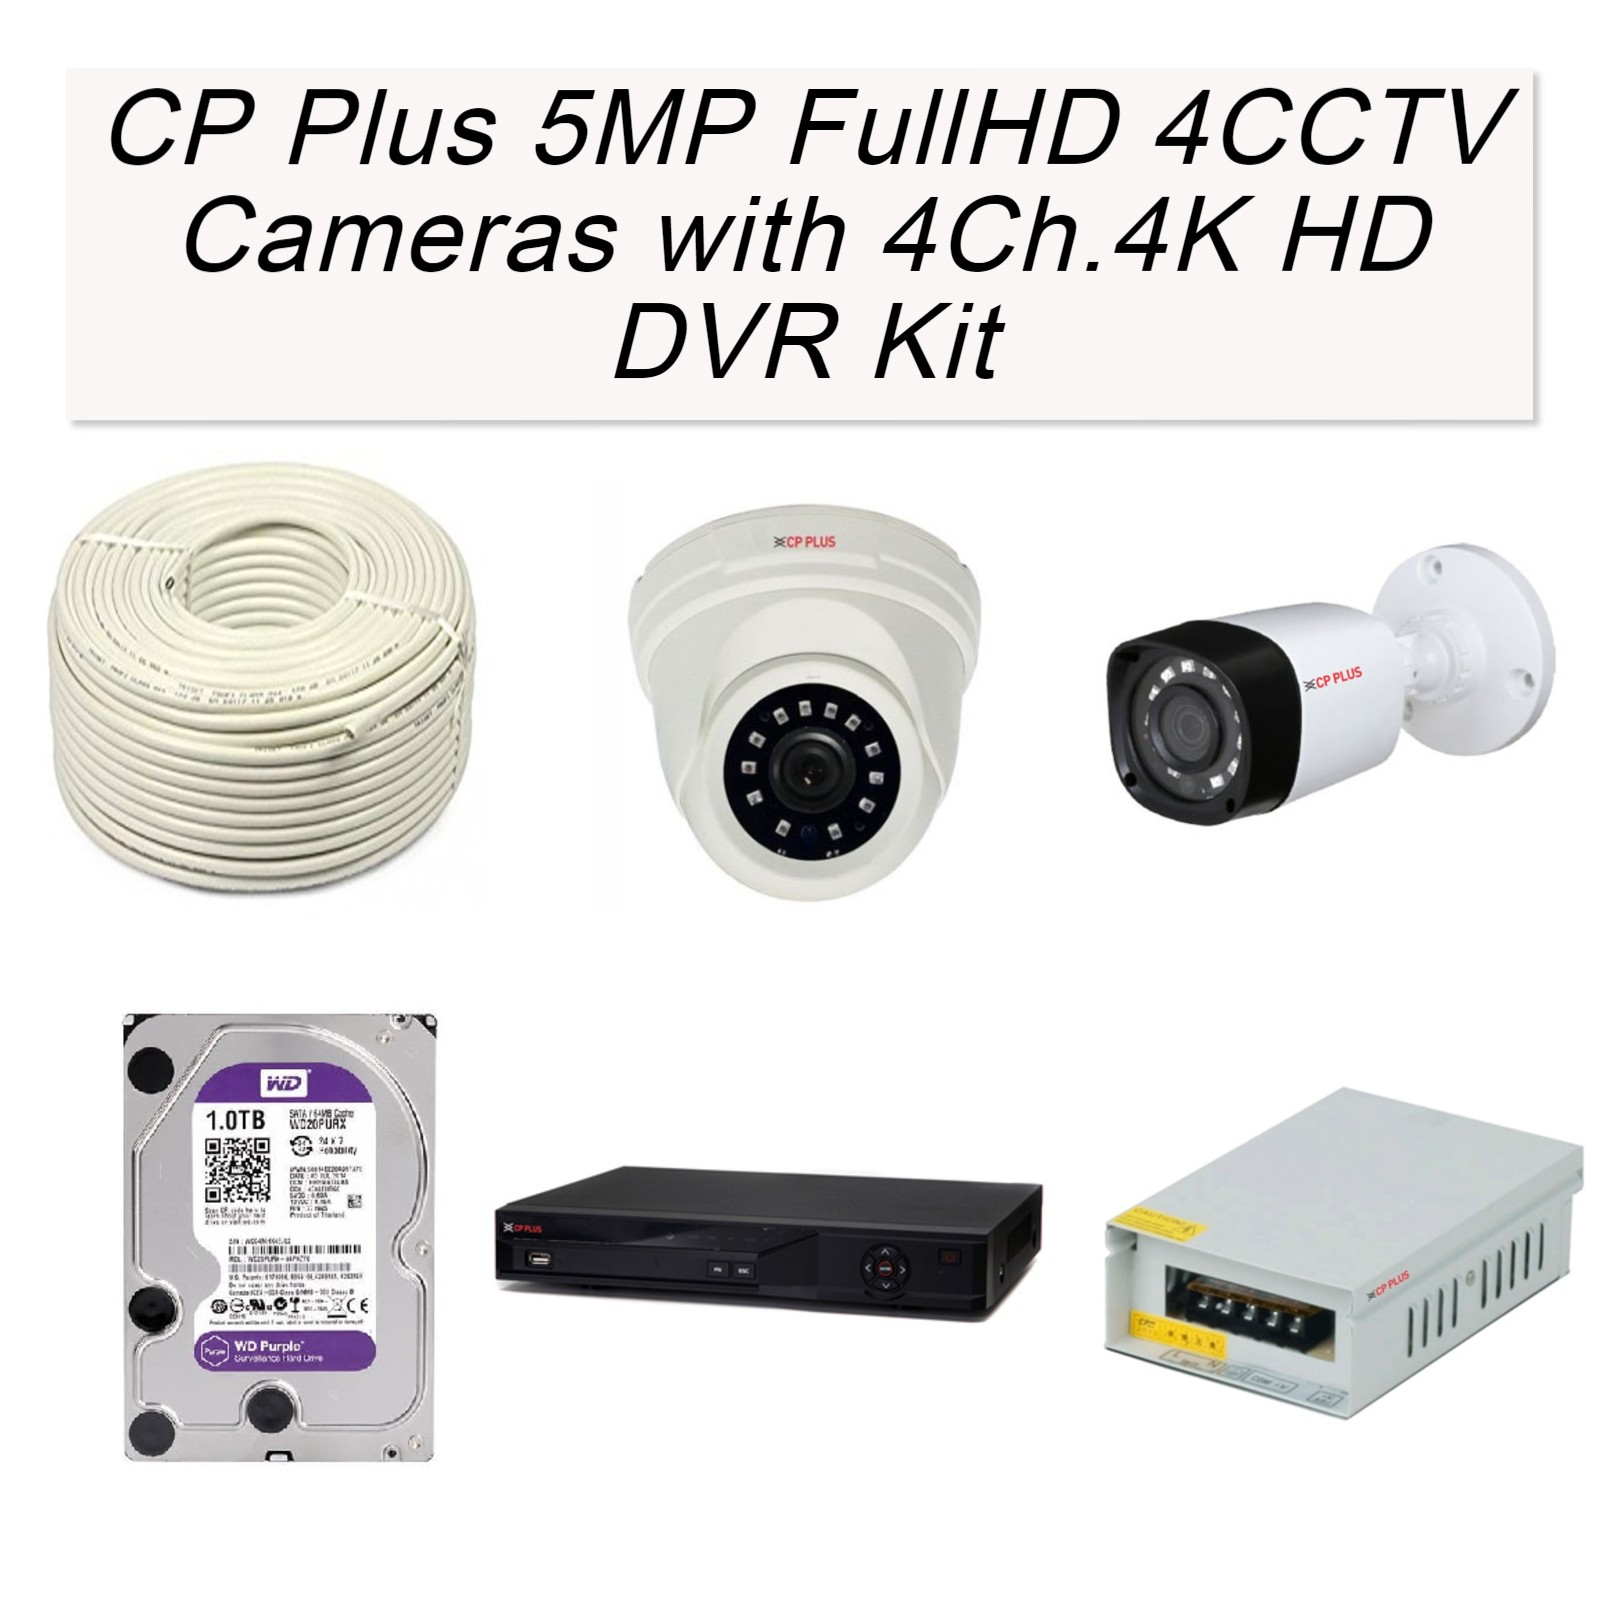 CP Plus 5MP Full HD 4 Cameras with 4Ch. 4K HD DVR Kit